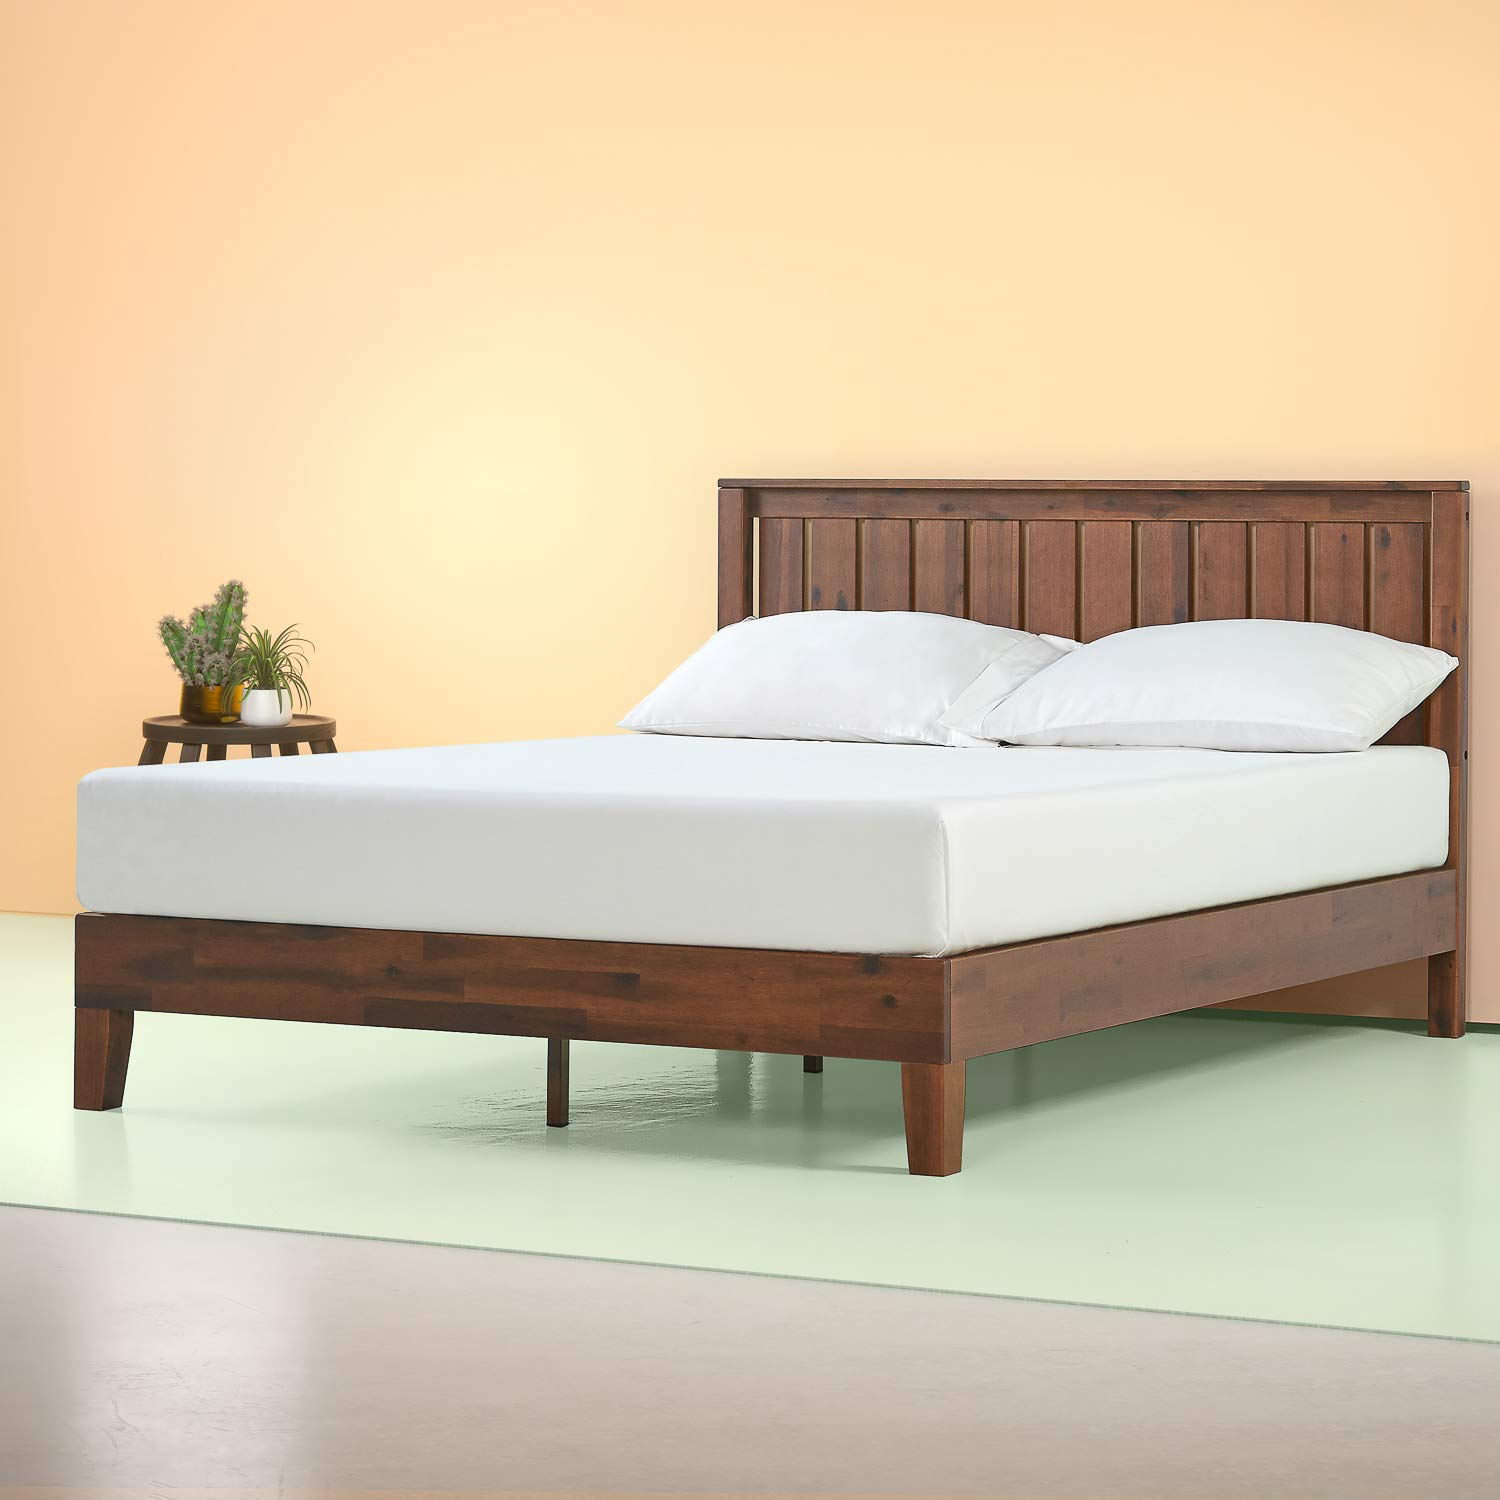 Zinus 12 Inch Deluxe Solid Wood Platform Bed with Headboard/No Box Spring Needed/Wood Slat Support/Antique Espresso Finish, Full by Zinus